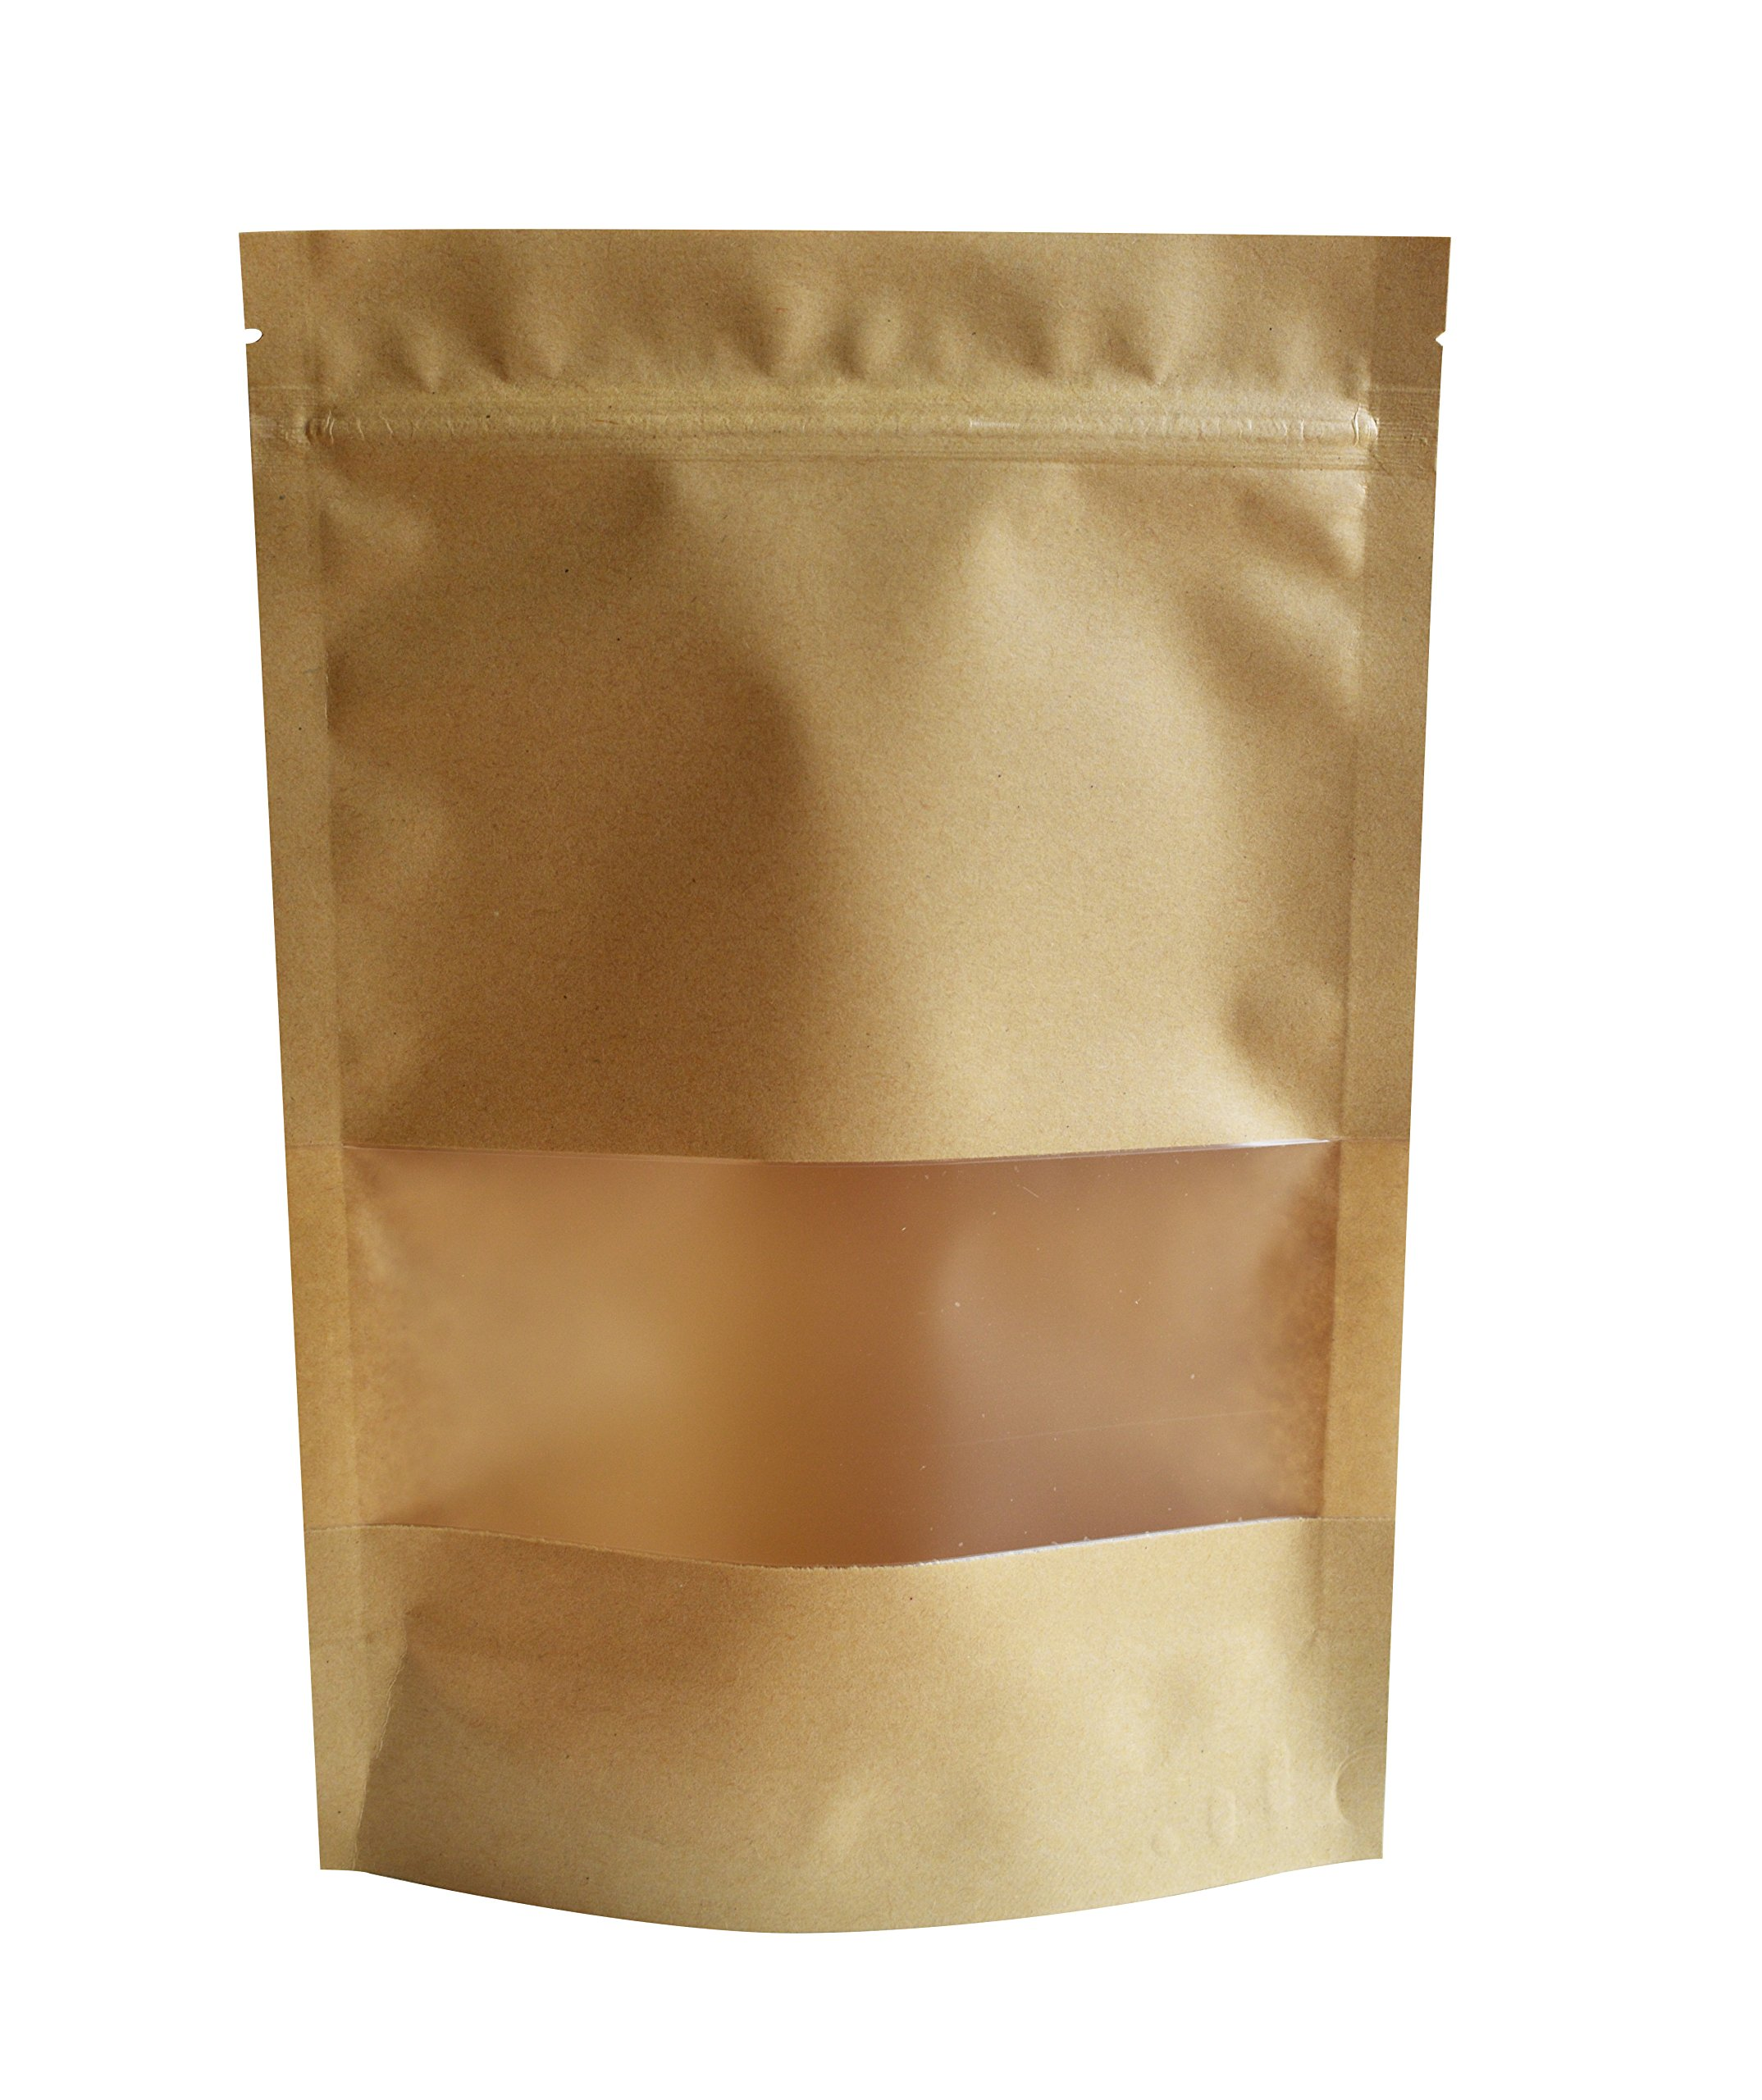 51groups Kraft Paper Bag with Transparent Window(30-Pack) Dry Food Snack Storage | Home, DIY, Commercial Use | Store Coffee, Tea Leaves, Nut, Candy | Food-Grade Safe (8''X 12'')